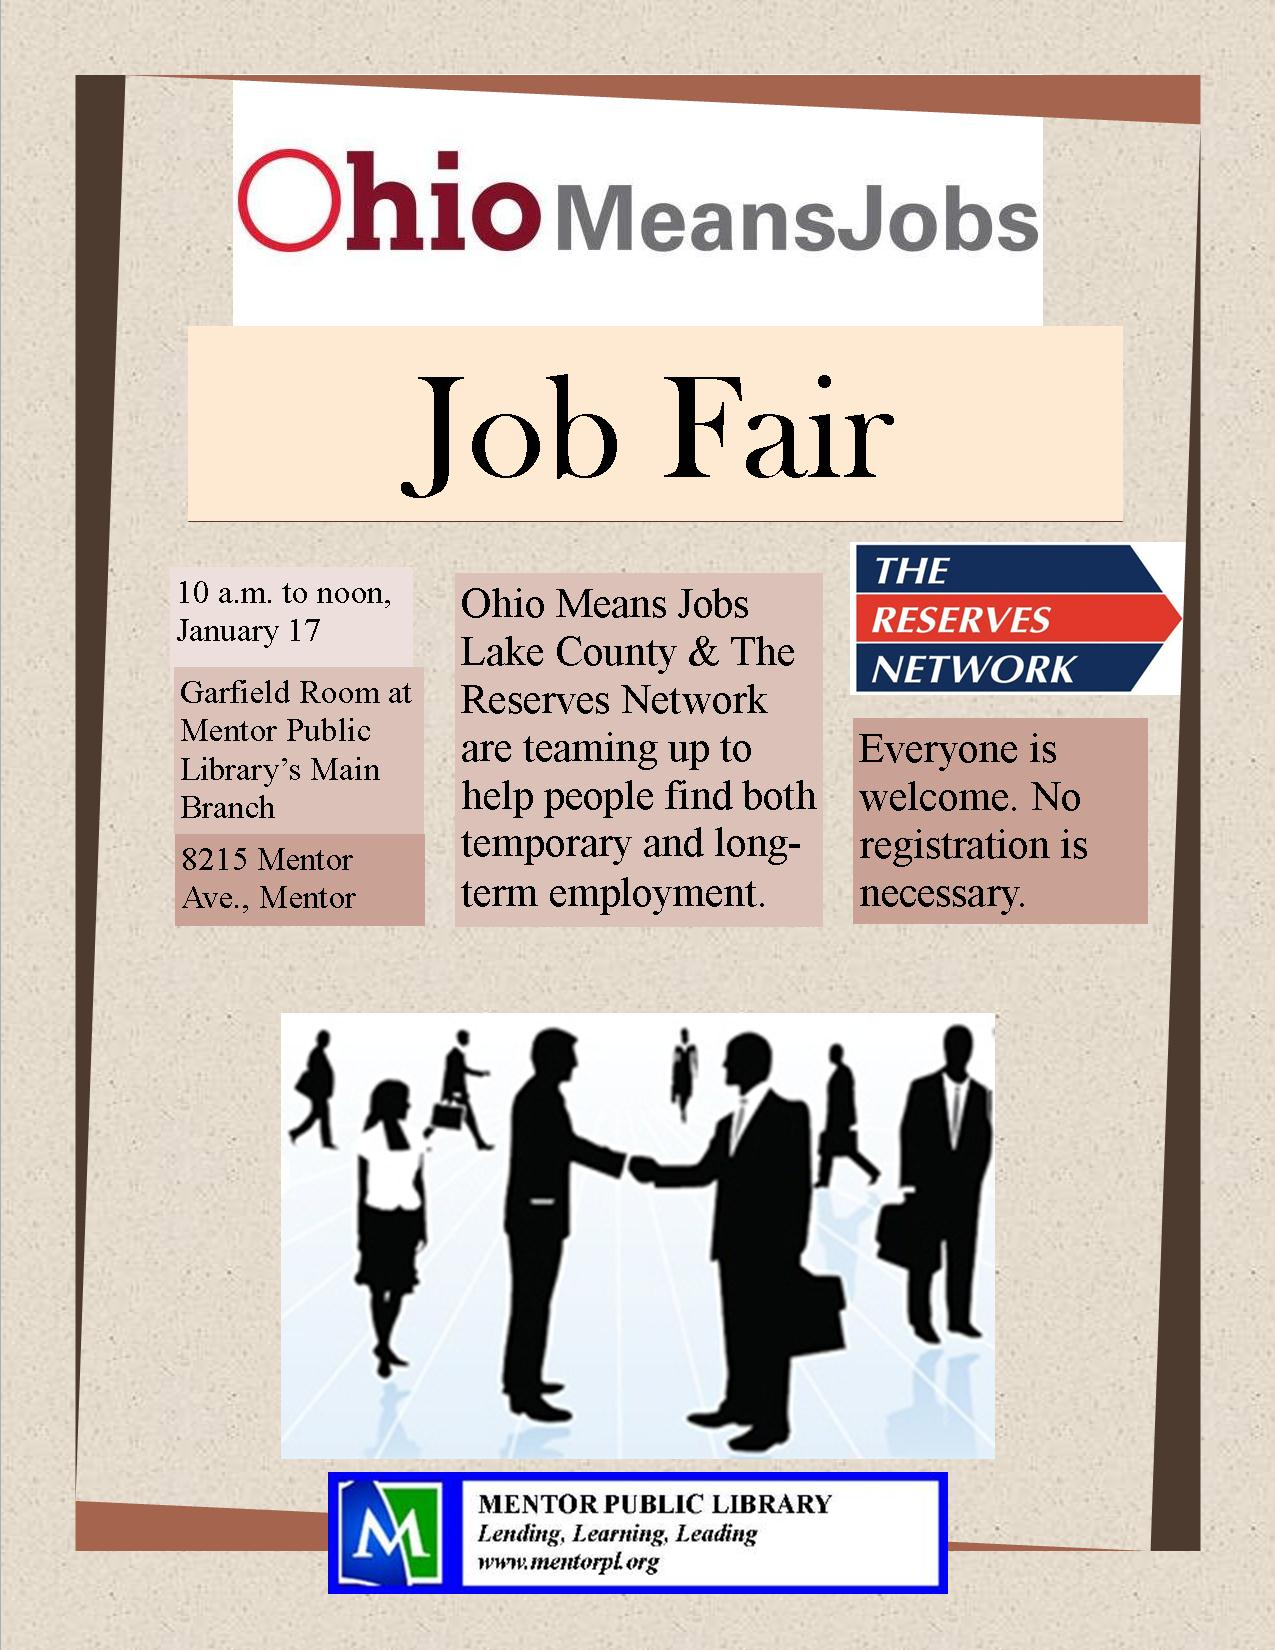 ohio means jobs & the reserves network hosting job fair at mentor